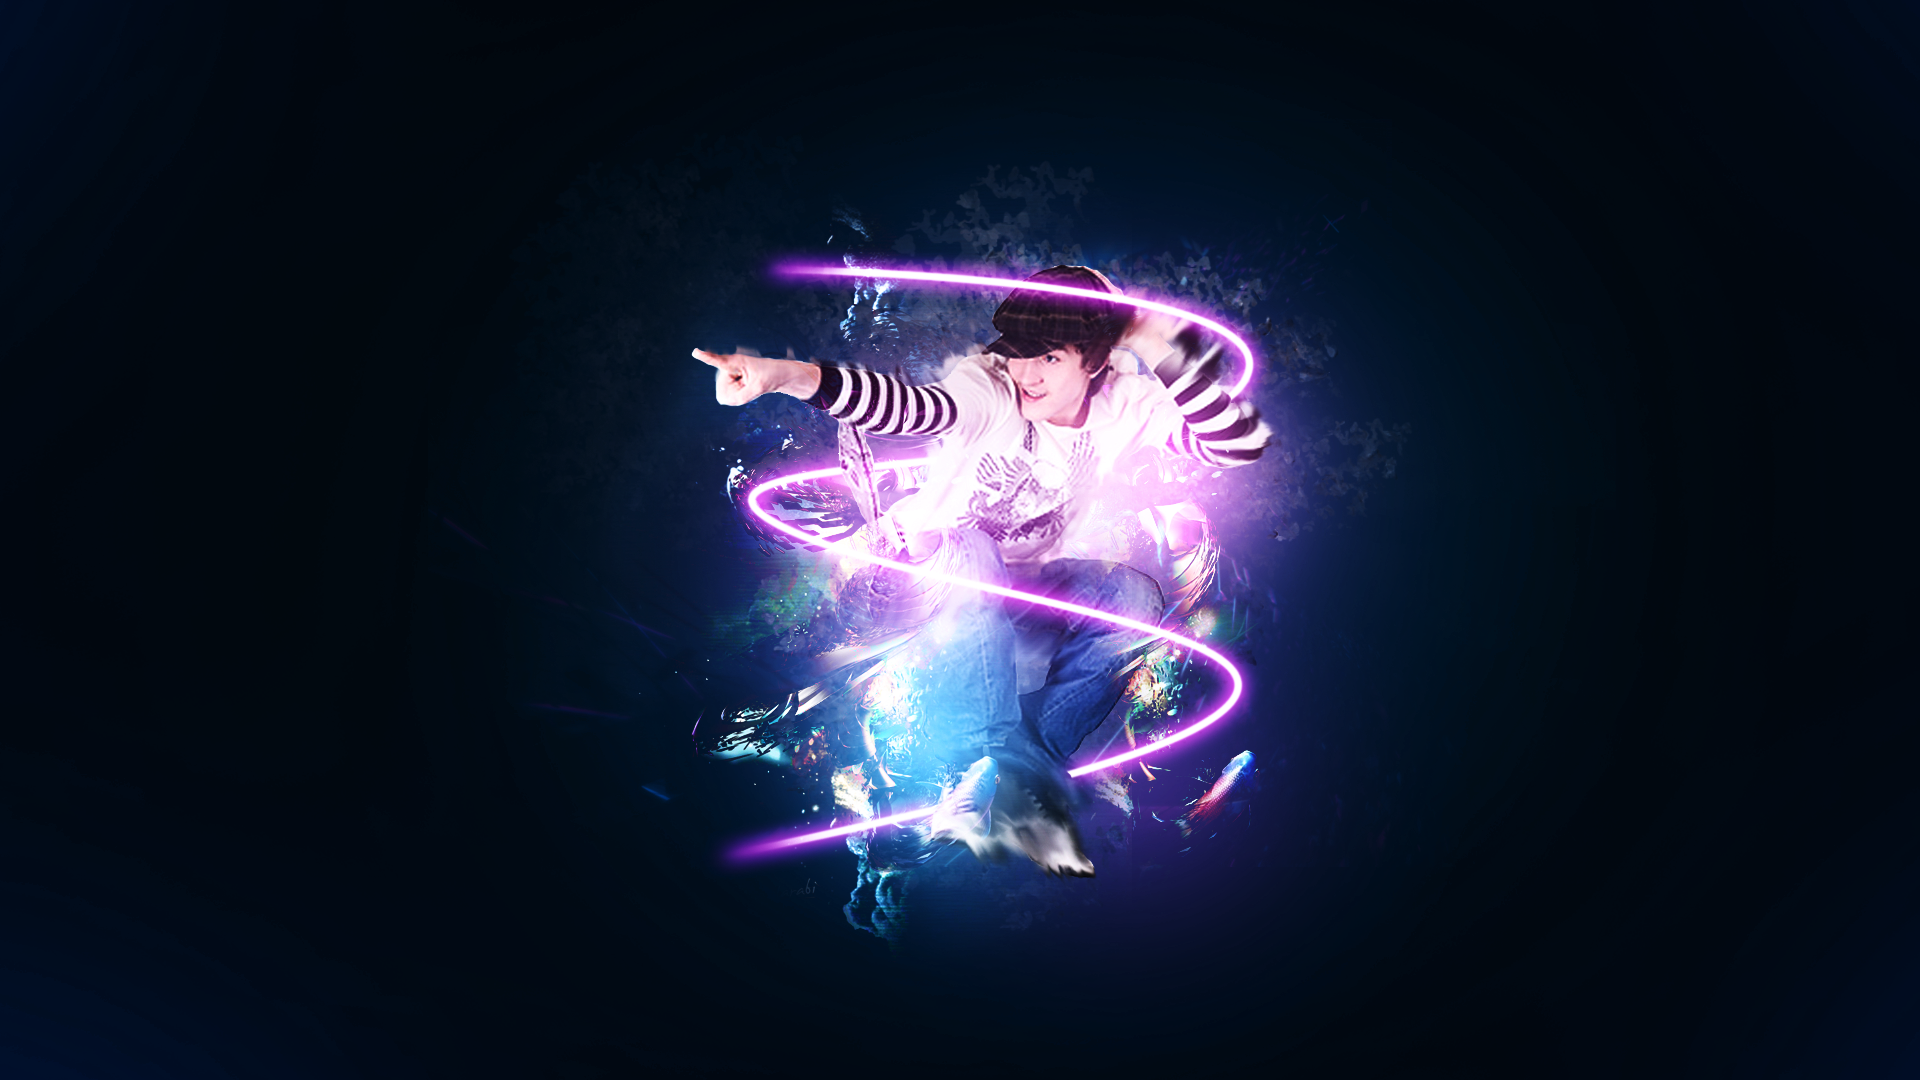 Wallpaper Dancer Art Stylishart94 1920x1080